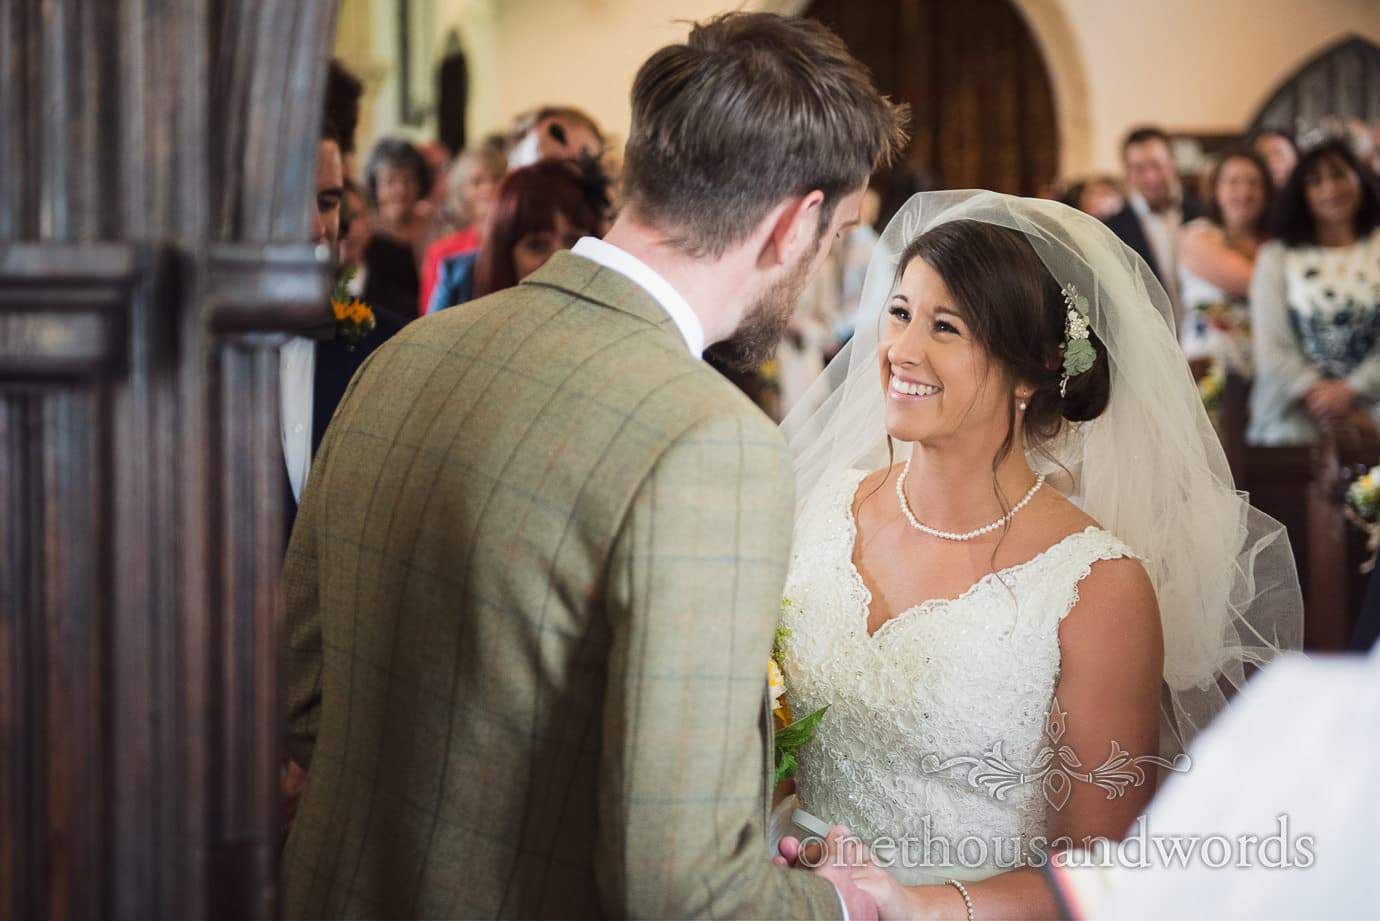 bride in veil and pearls smiles at groom during rustic English church wedding ceremony